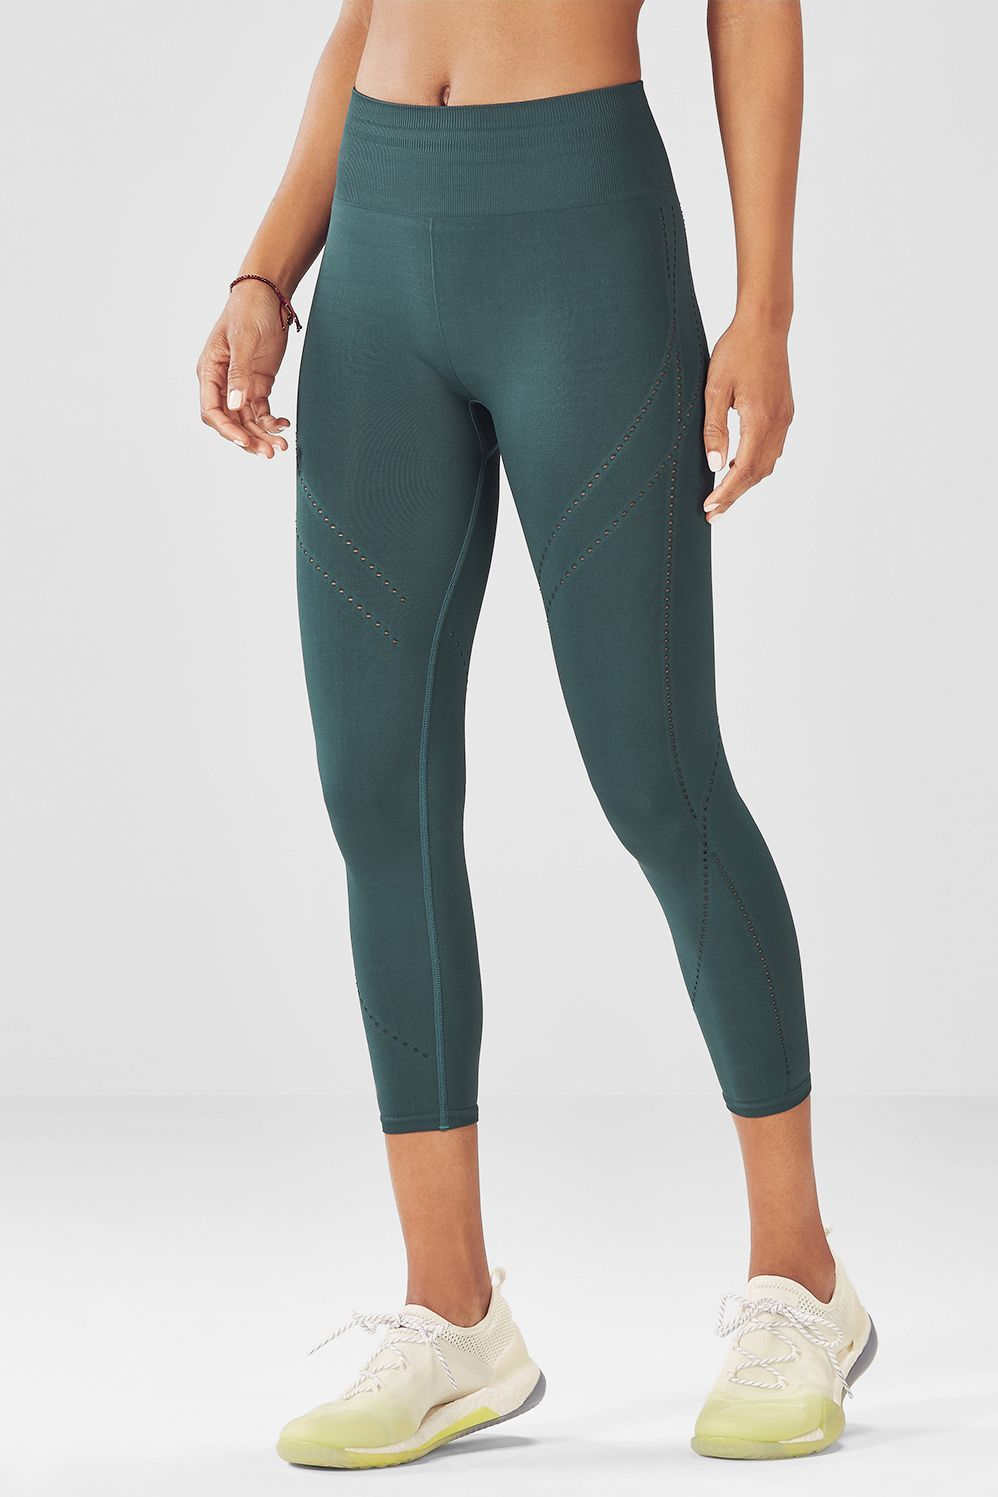 9ca5f3233dde9b Feel free and supported all at once in our seamless capris, built with  light compression and a comfy ribbed high-rise waist. Your stretch sesh  never felt so ...